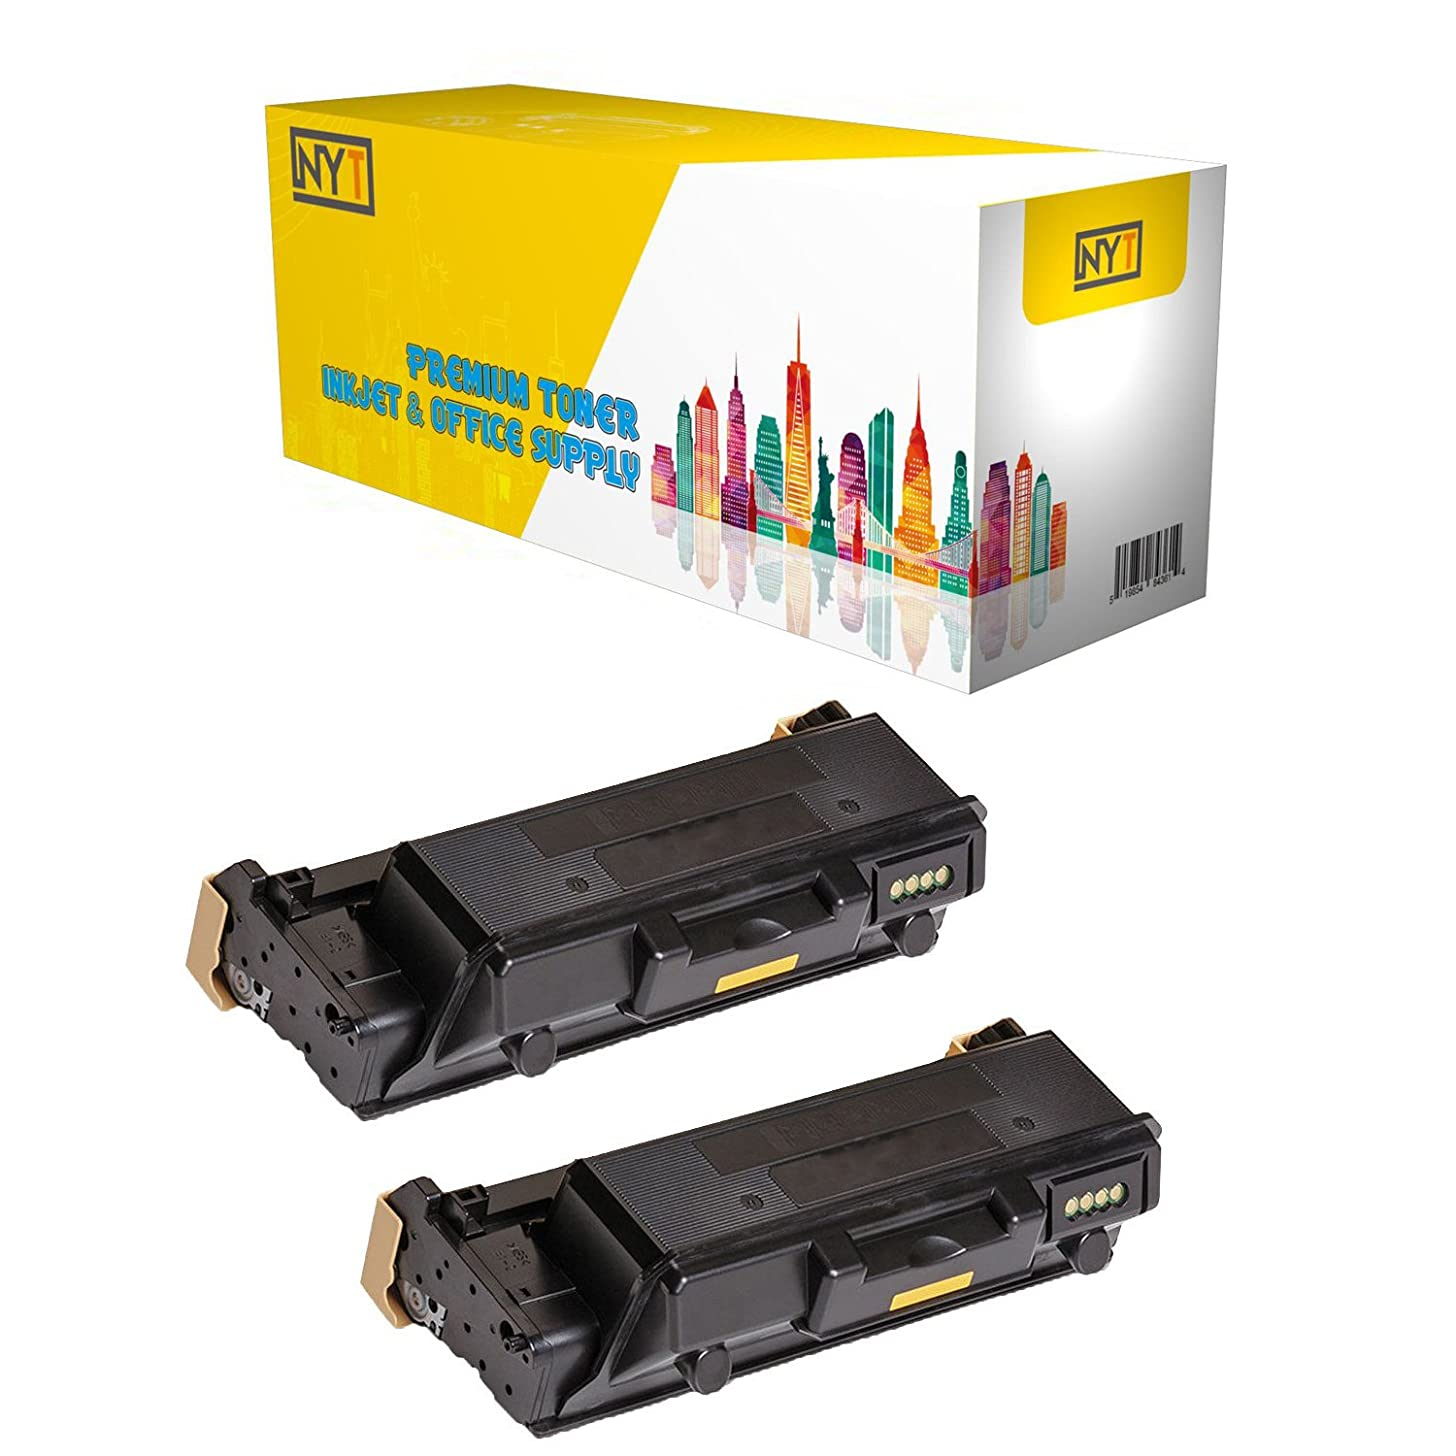 New York TonerTM New Compatible 2 Pack 106R03620 High Yield Toner for Xerox - Phaser 3330 WorkCentre 3335 3345 . -- Black